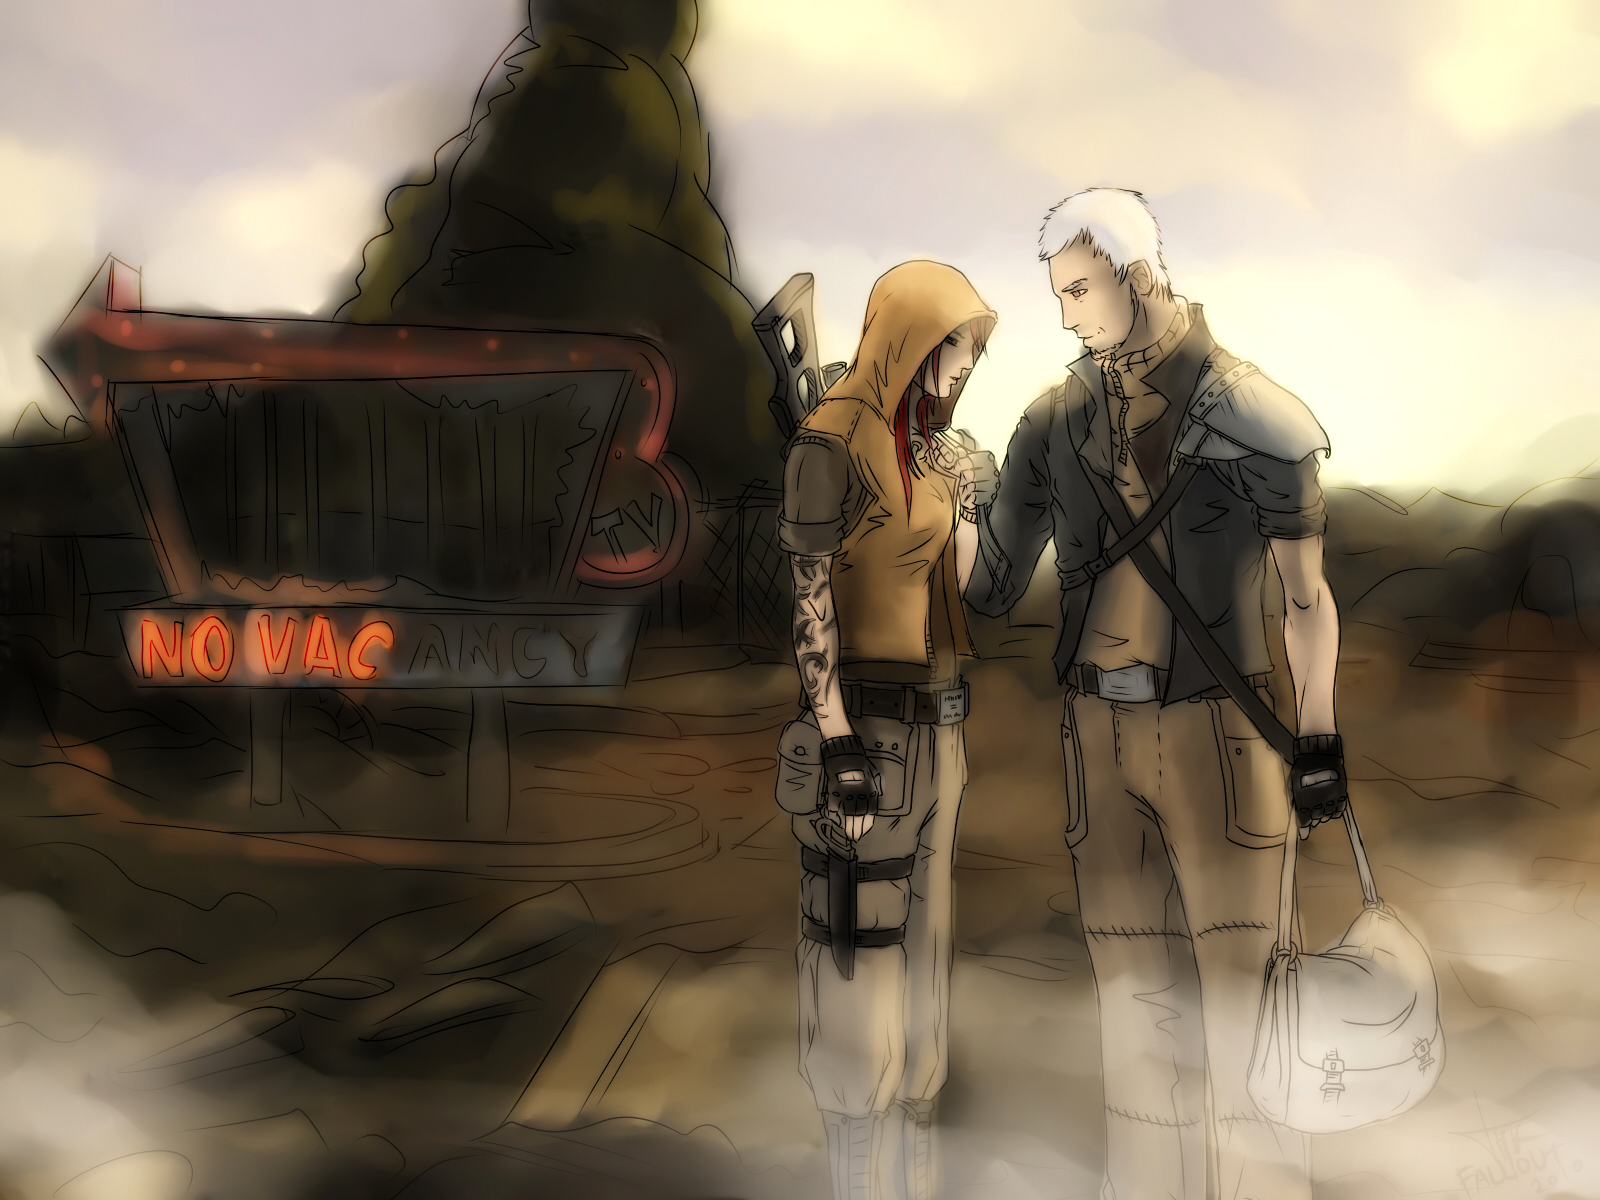 Fallout 3 Anime Characters : Fallout novac art by silena tok on deviantart